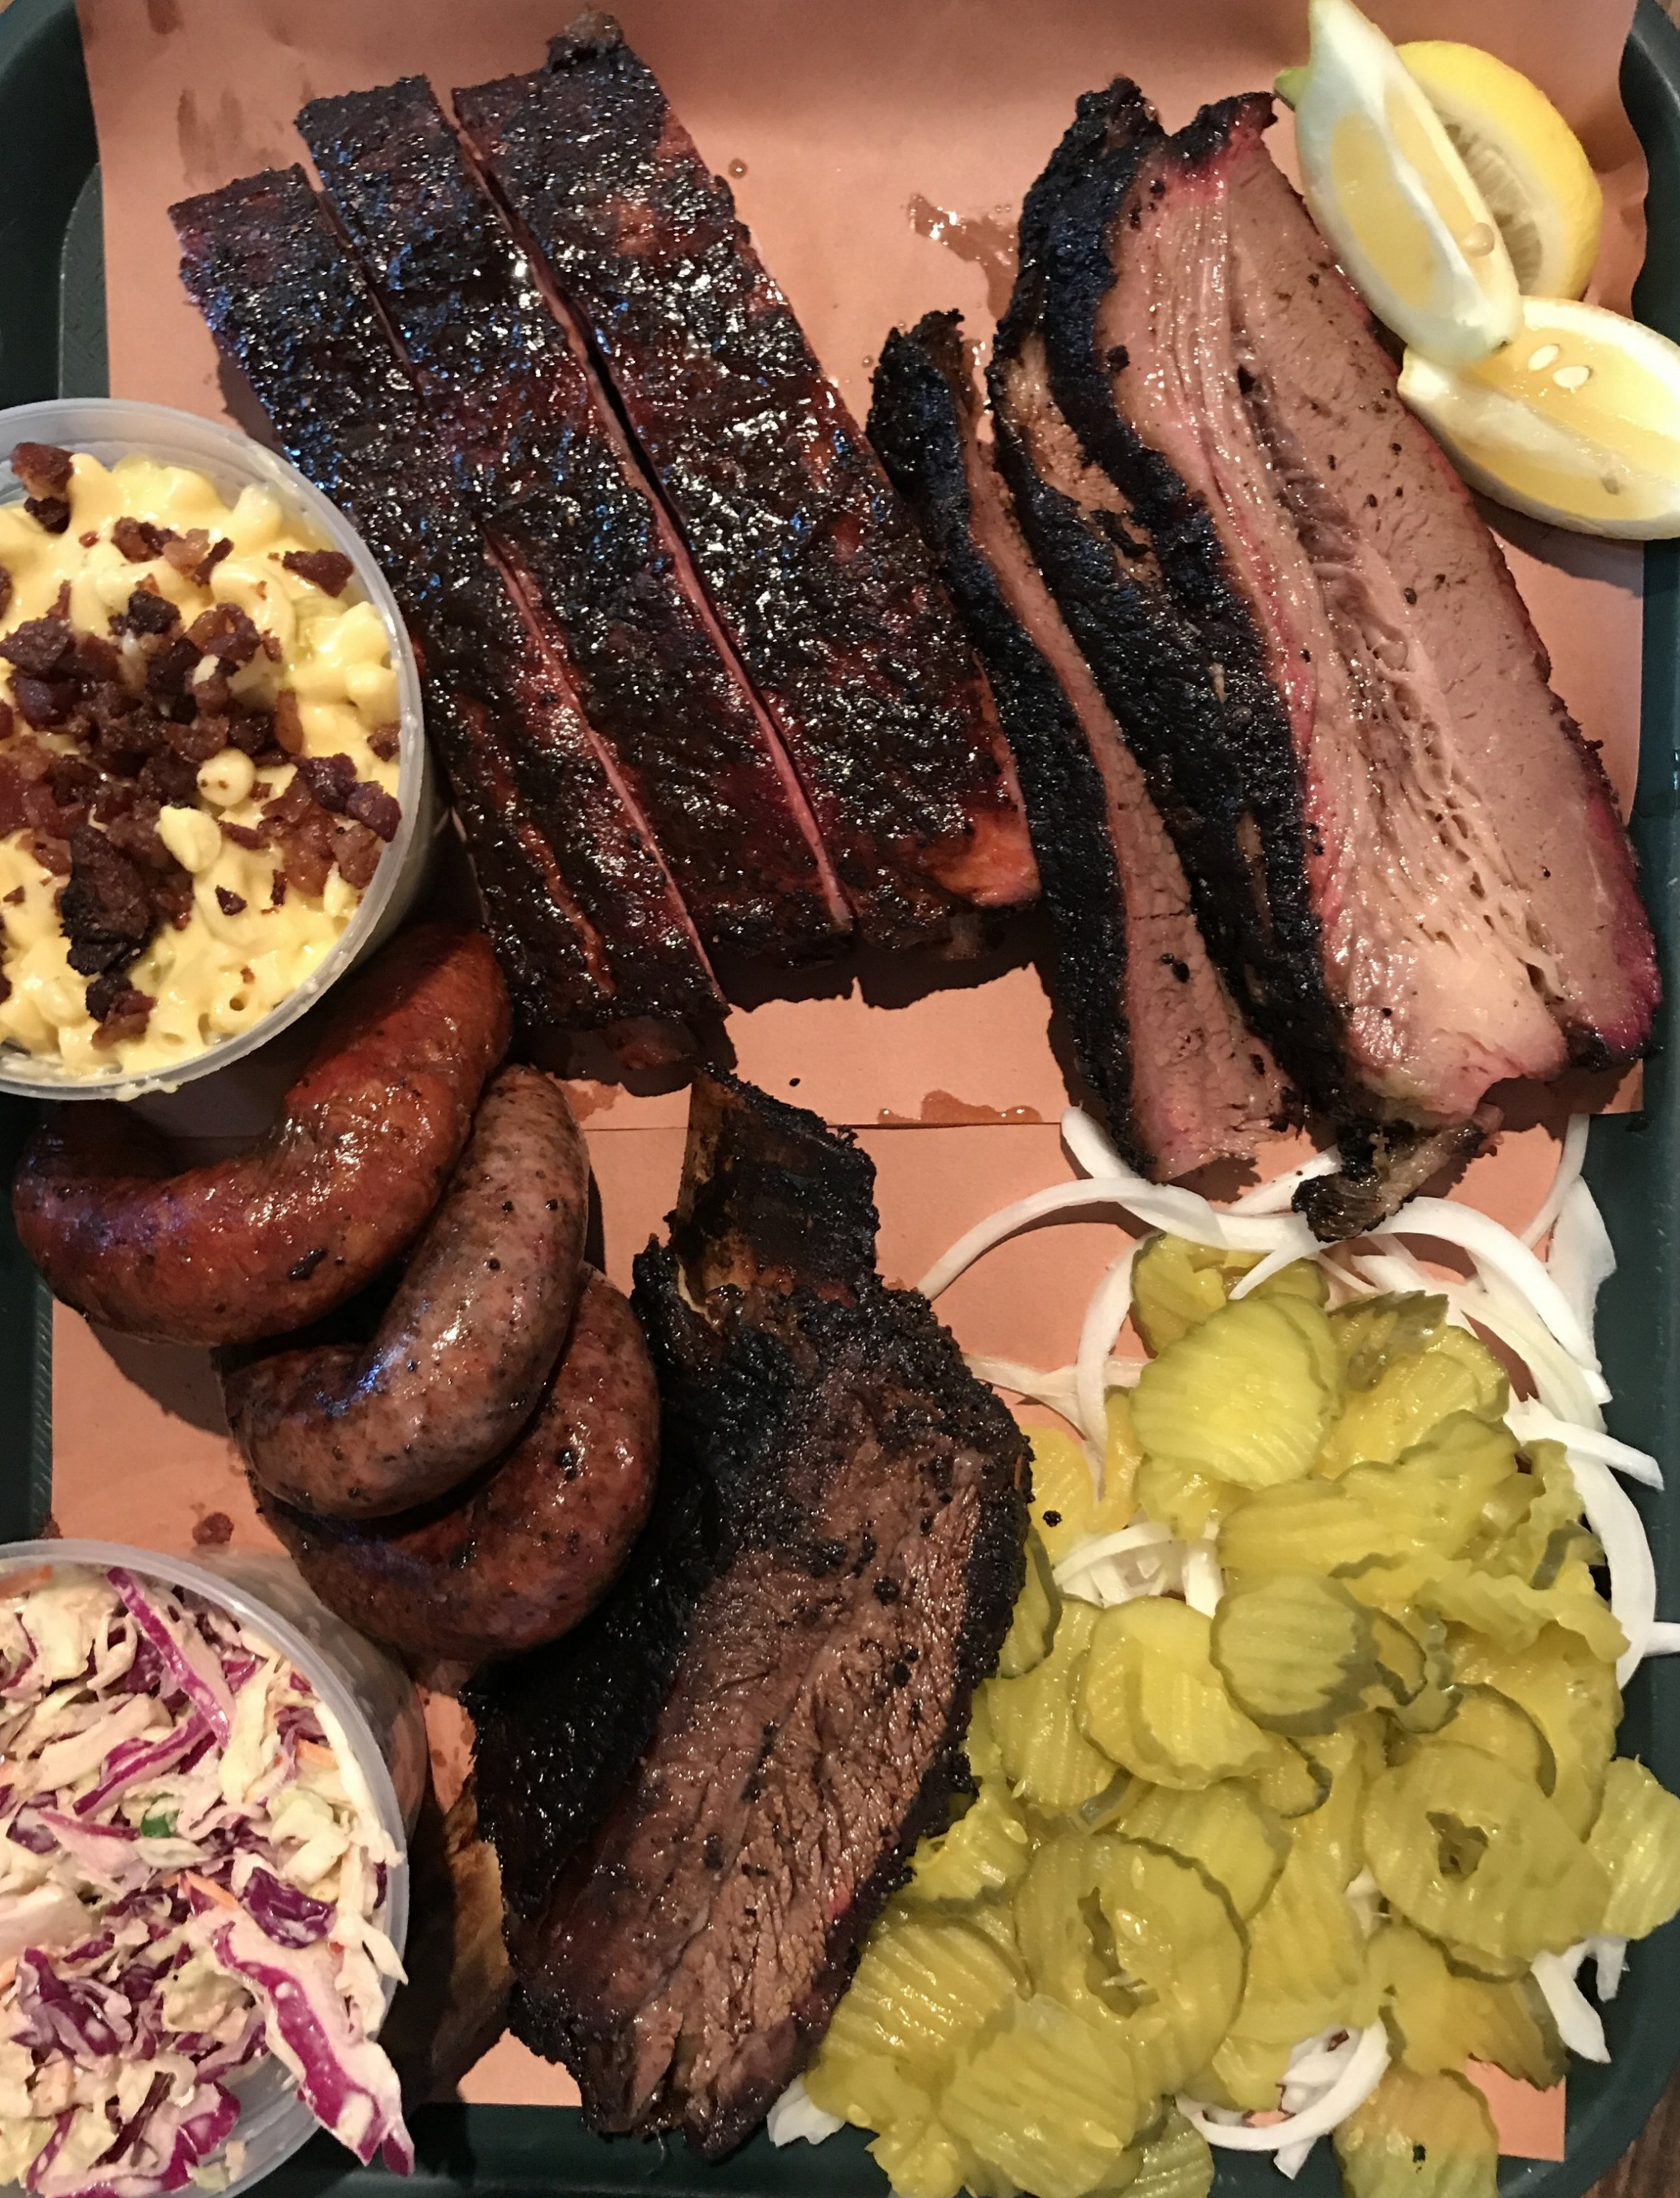 The bbq at Pecan Lodge tasted amazing!